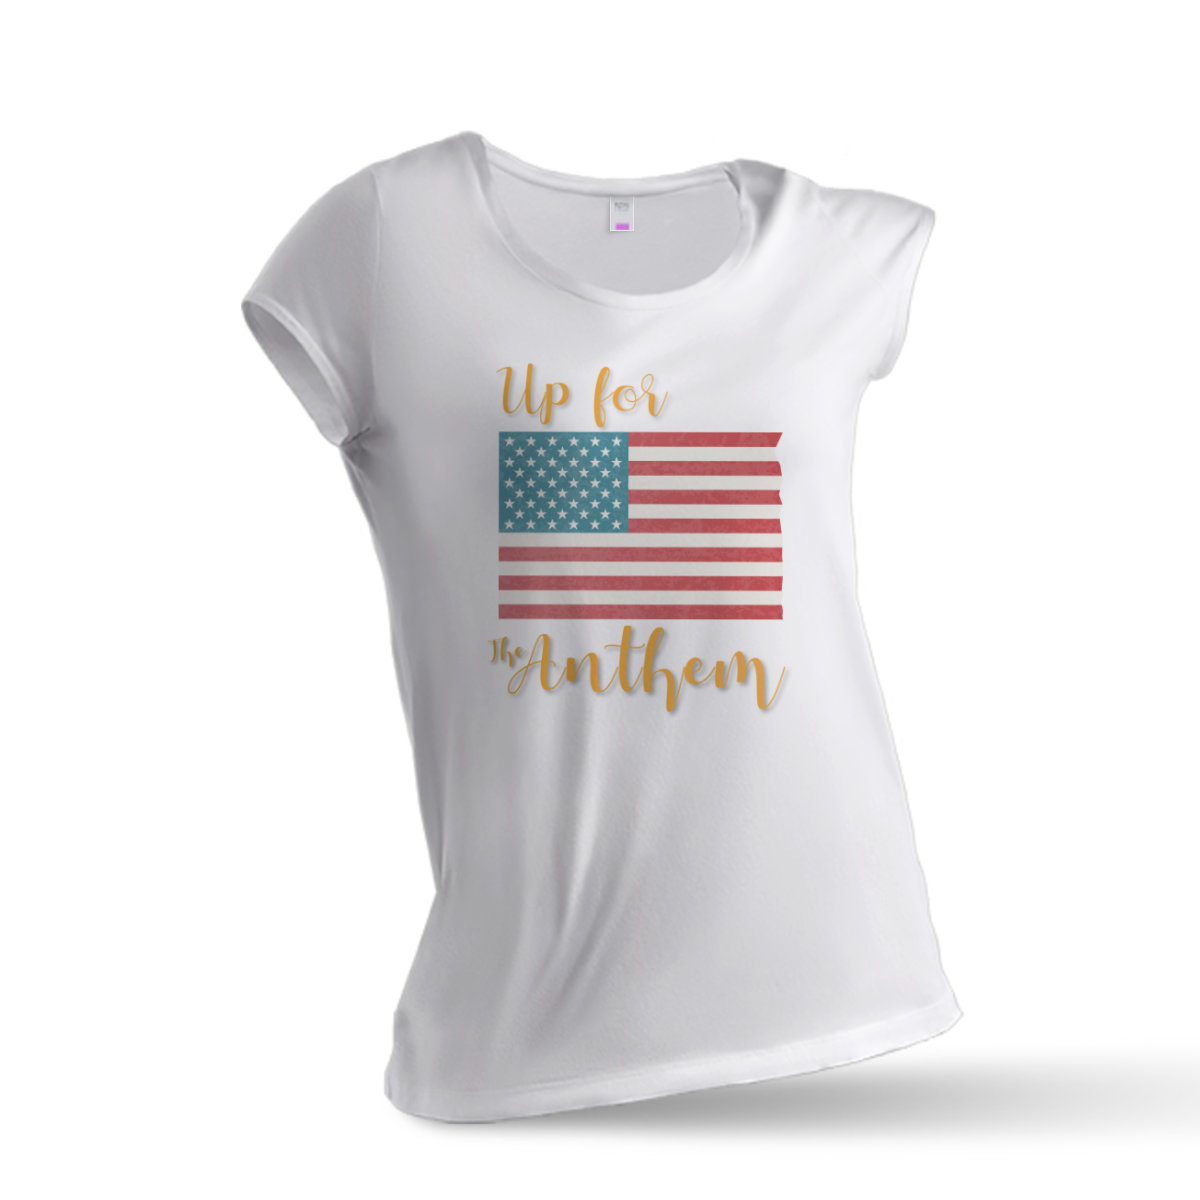 Woman T-Shirt Up for the Anthem (1) - White